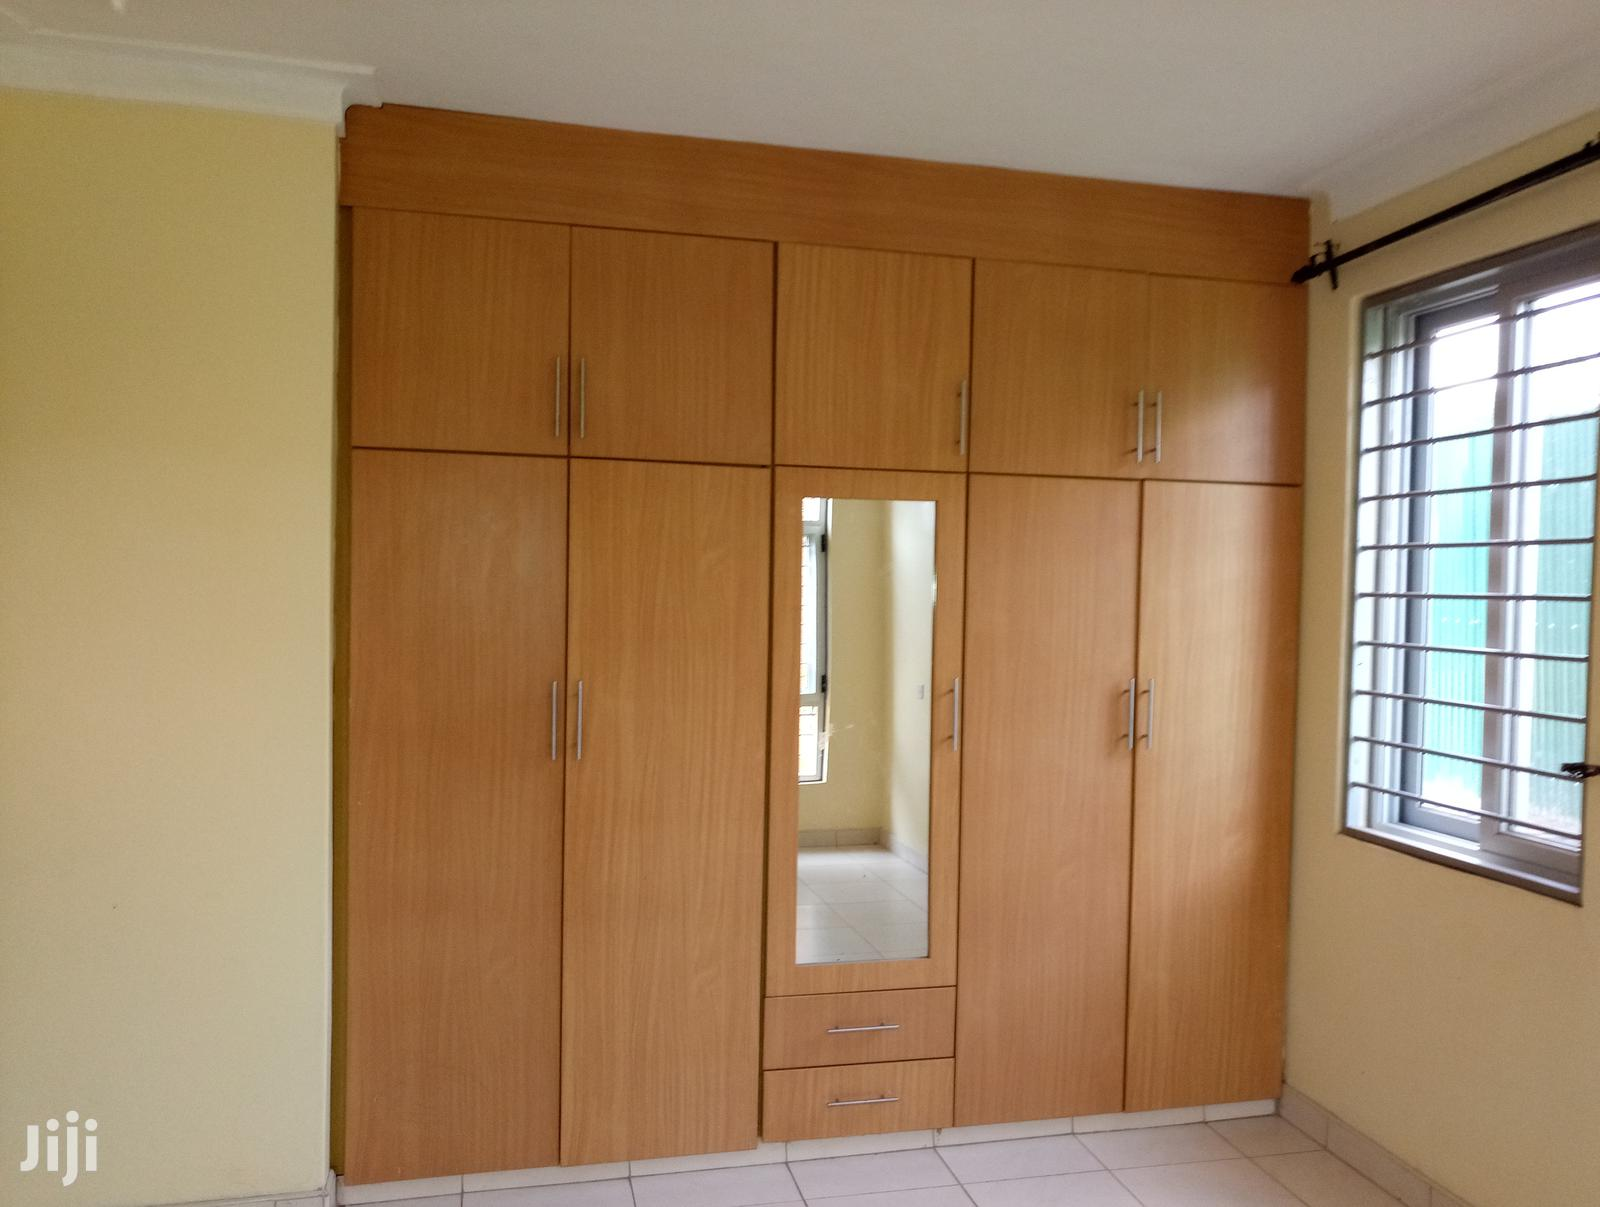 Archive: Three Bedroom Apartment For Rent In Naalya